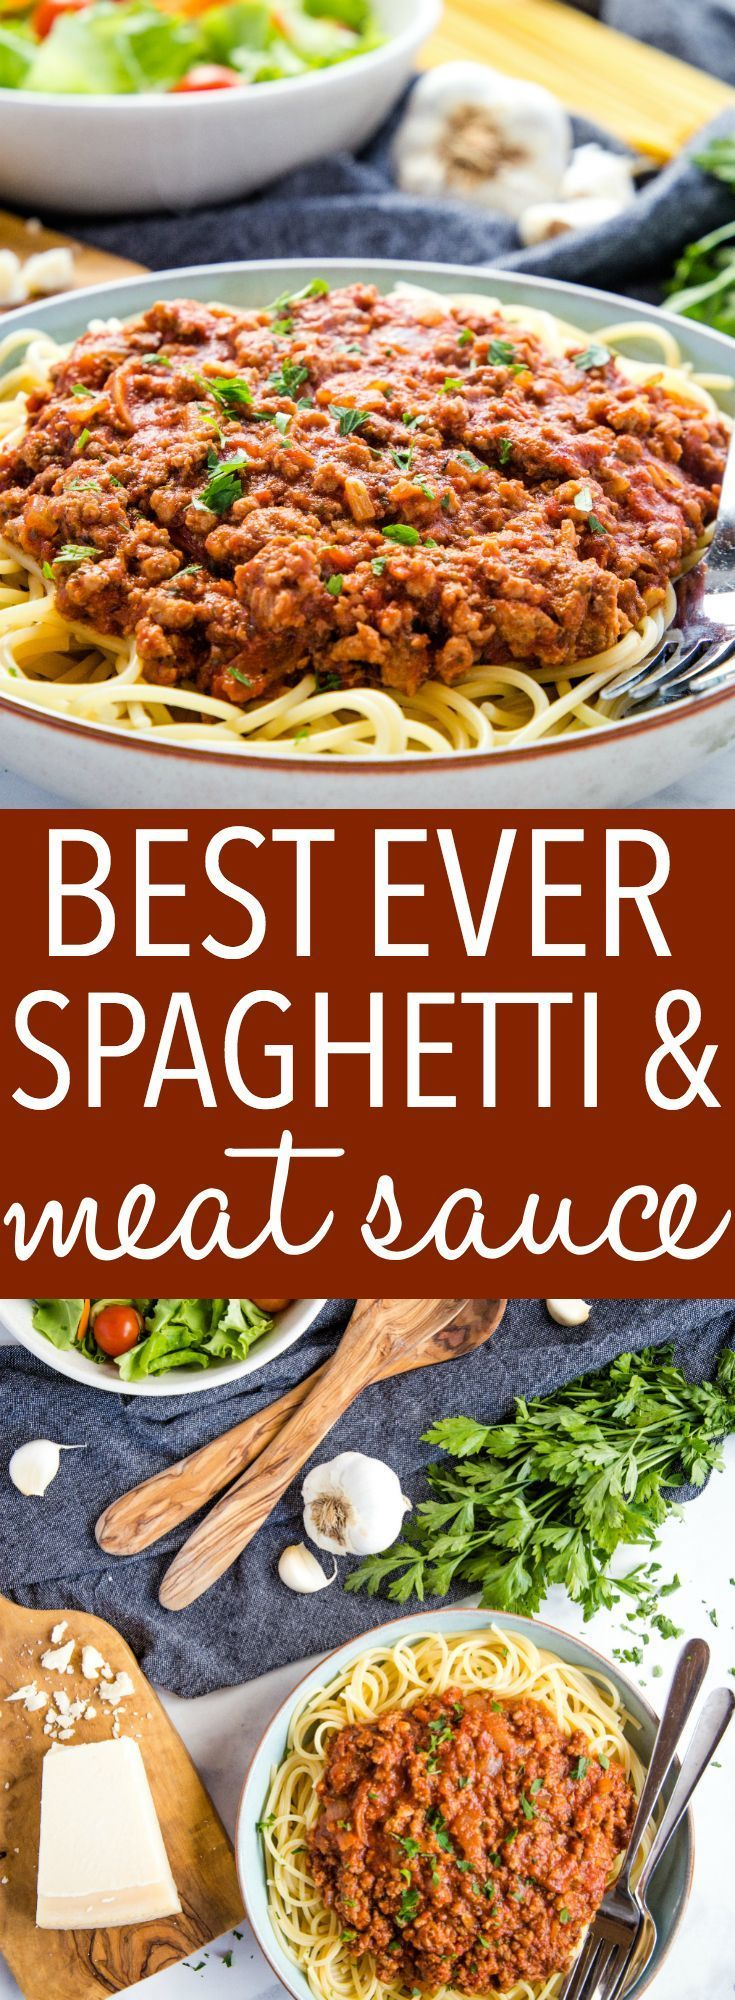 Best Ever Spaghetti and Meat Sauce